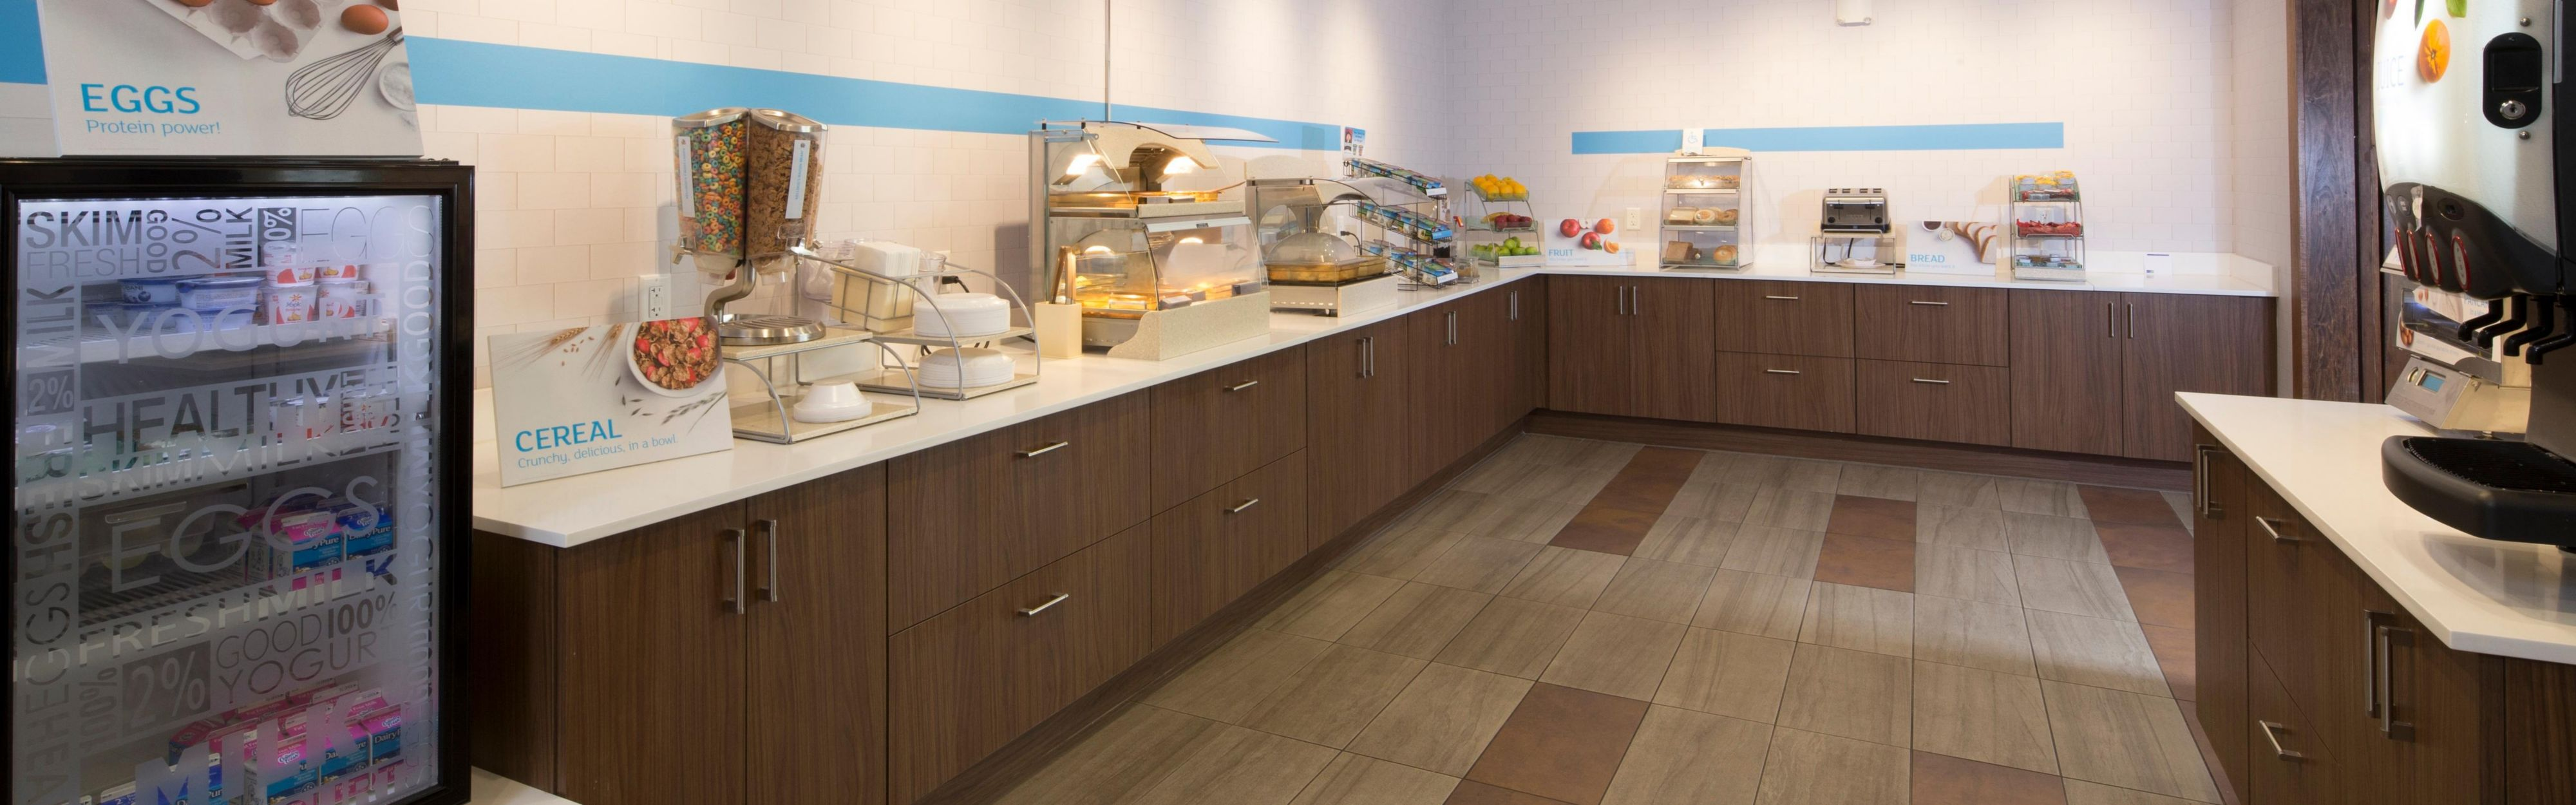 Holiday Inn Express & Suites Alpena - Downtown image 3